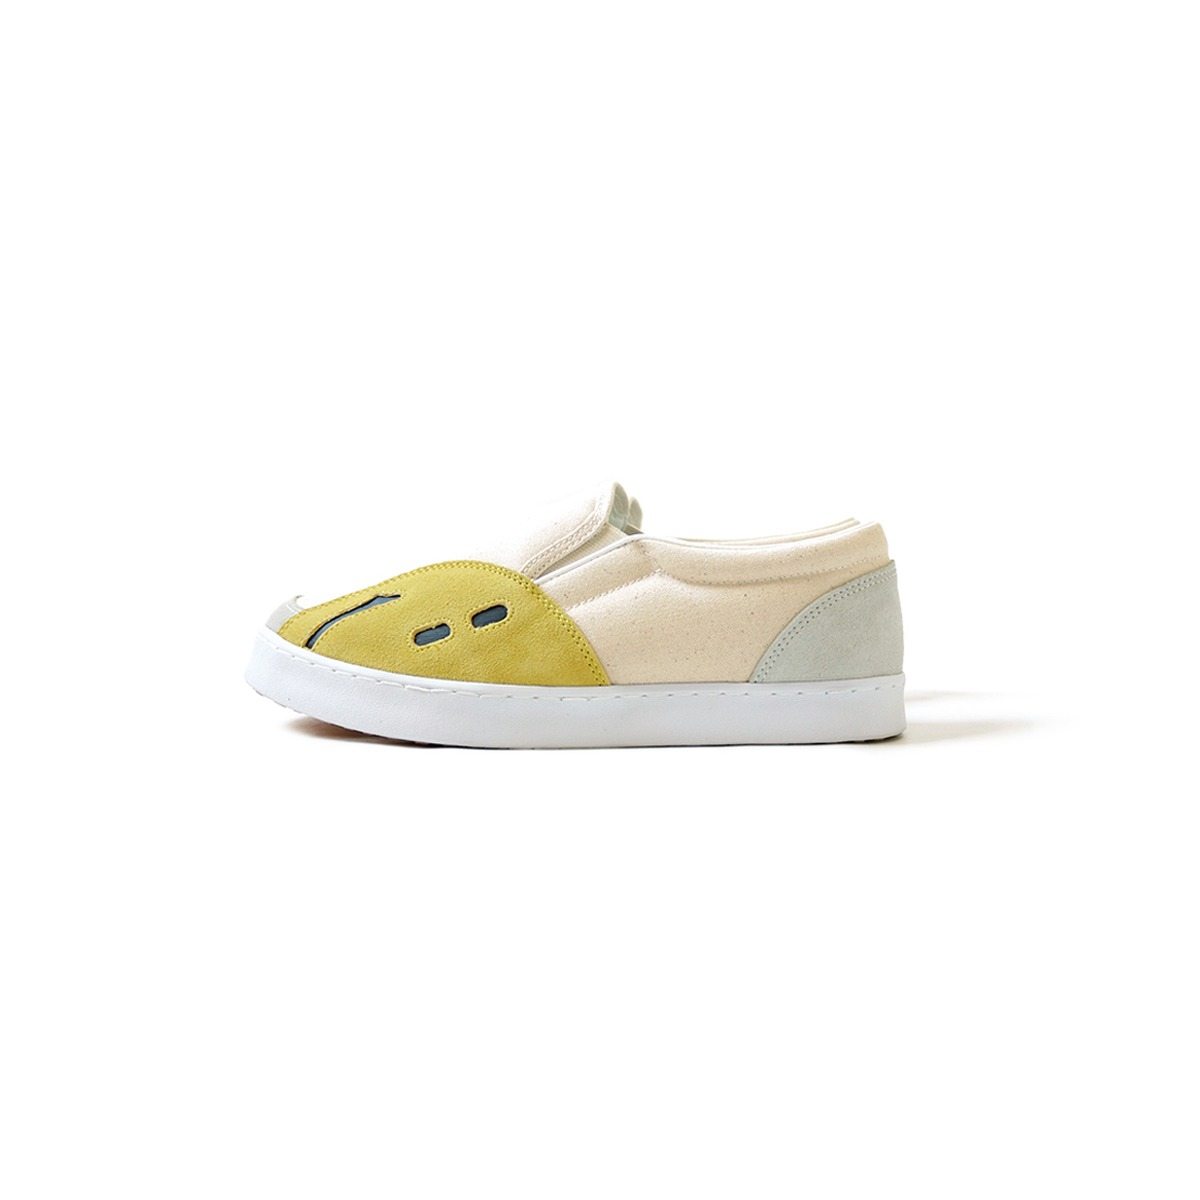 [KAPITAL] RAIN SMILE SLOP-ON SHOES 'ECRU'